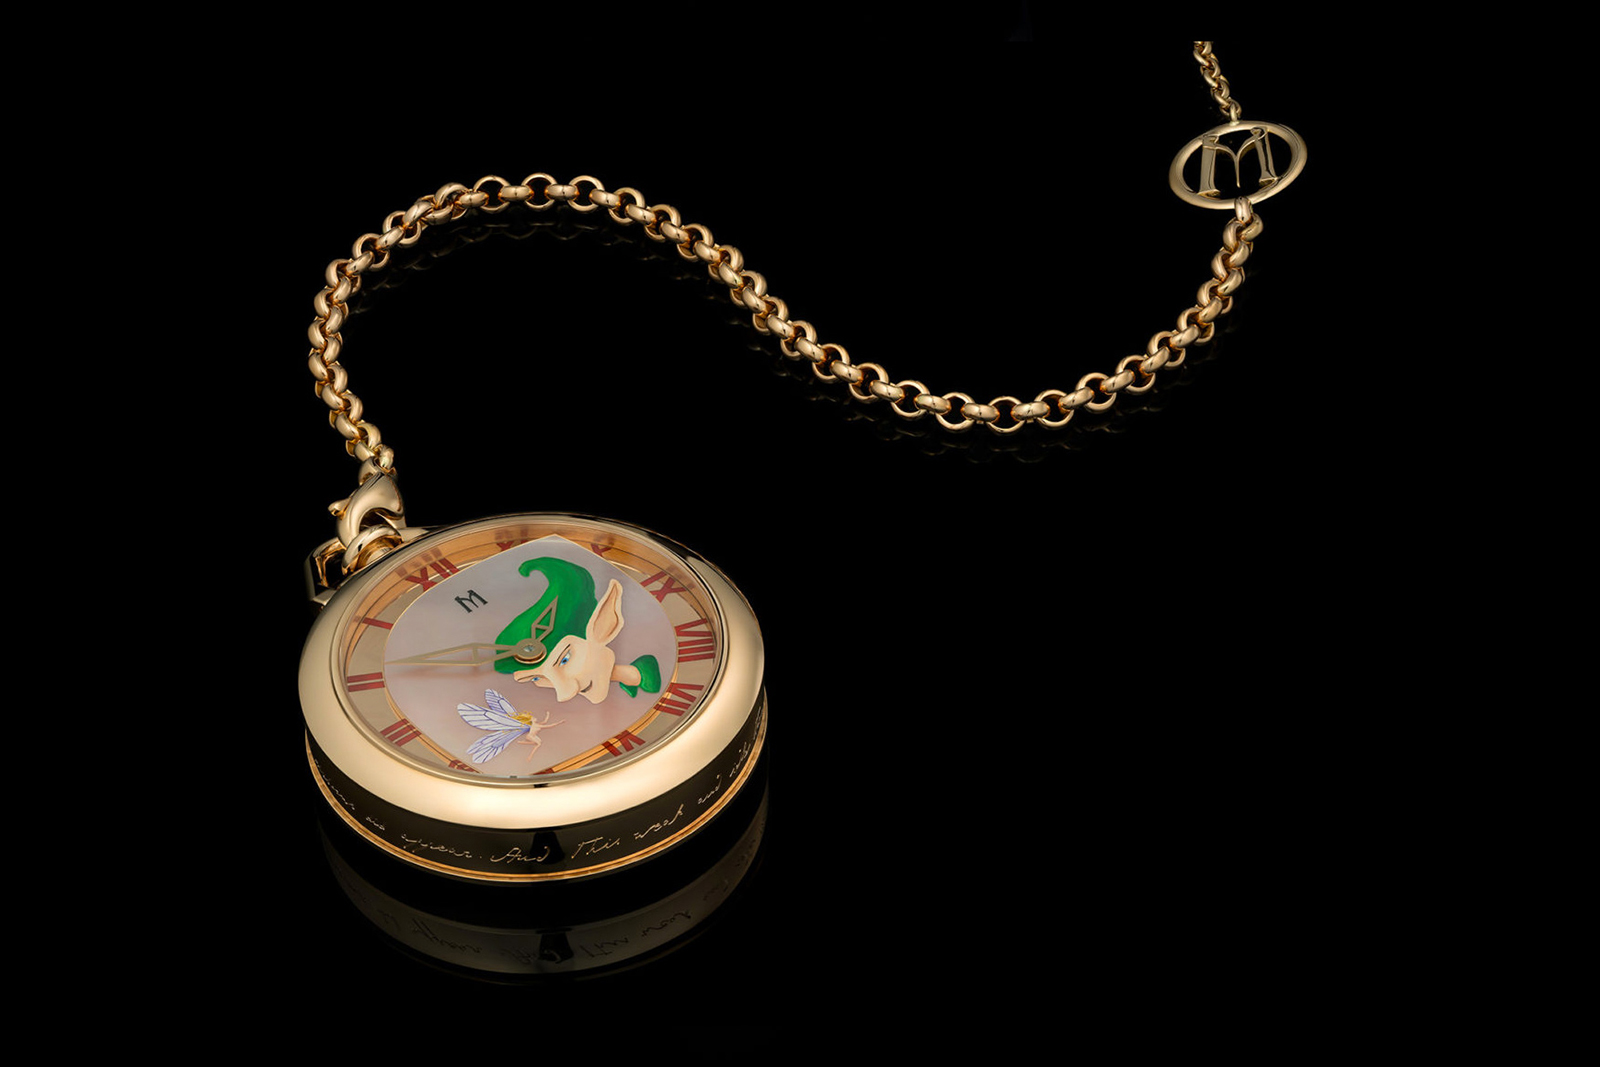 M Haute Joaillerie 'Puck' pocketwatch in 18k rose gold with cabochon emerald, and enamel painting on nacre